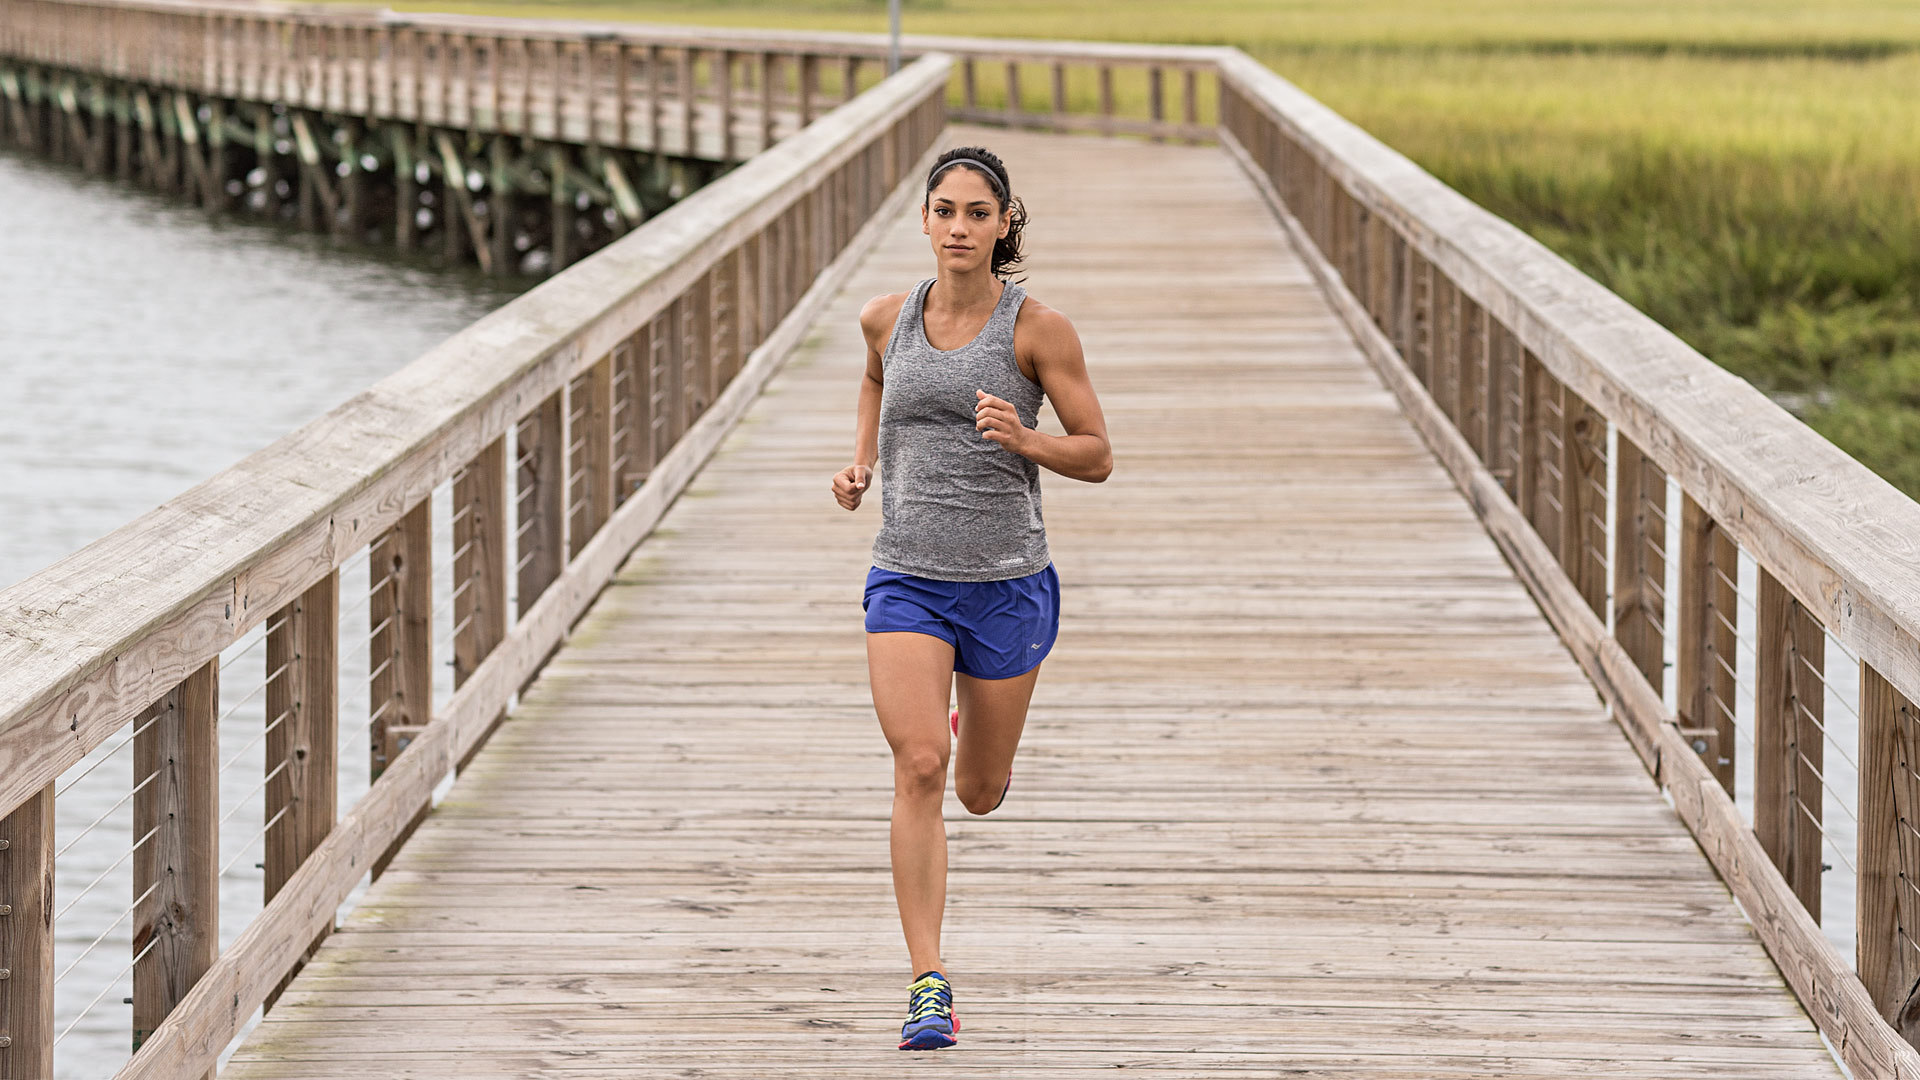 More 25 Allison Stokke Wallpapers Images Photo